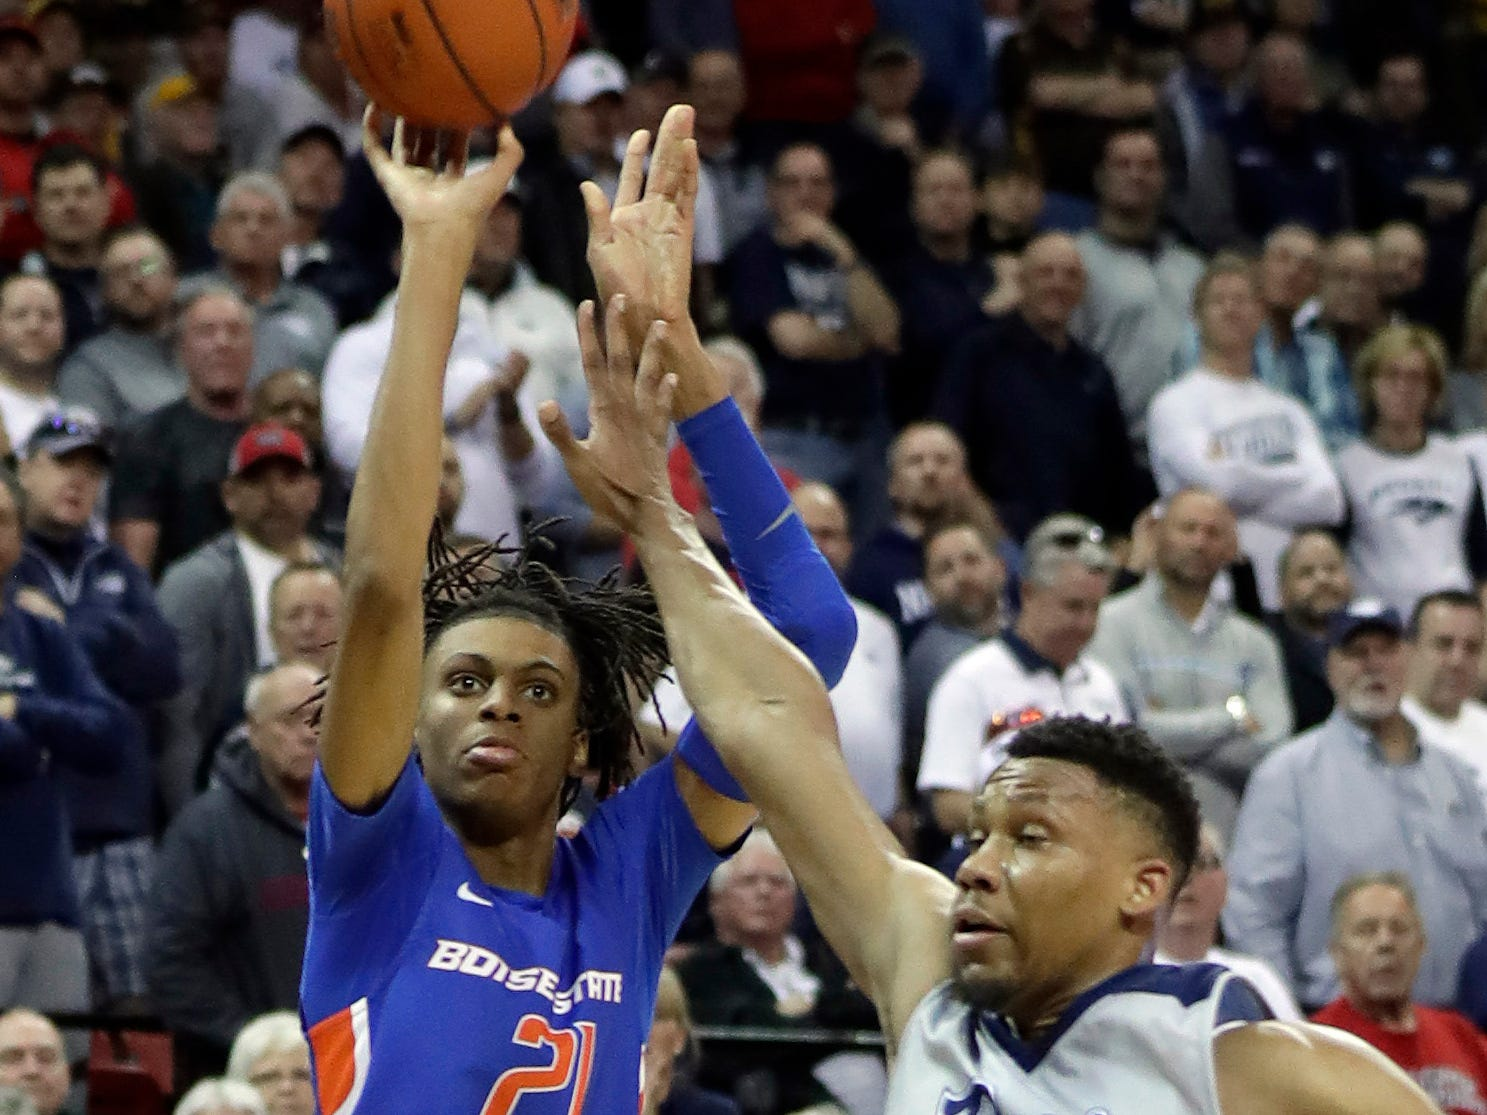 Nevada's Tre'Shawn Thurman (0) covers a shot from Boise State's Derrick Alston during the second half of an NCAA college basketball game in the Mountain West Conference men's tournament Thursday, March 14, 2019, in Las Vegas. (AP Photo/Isaac Brekken)